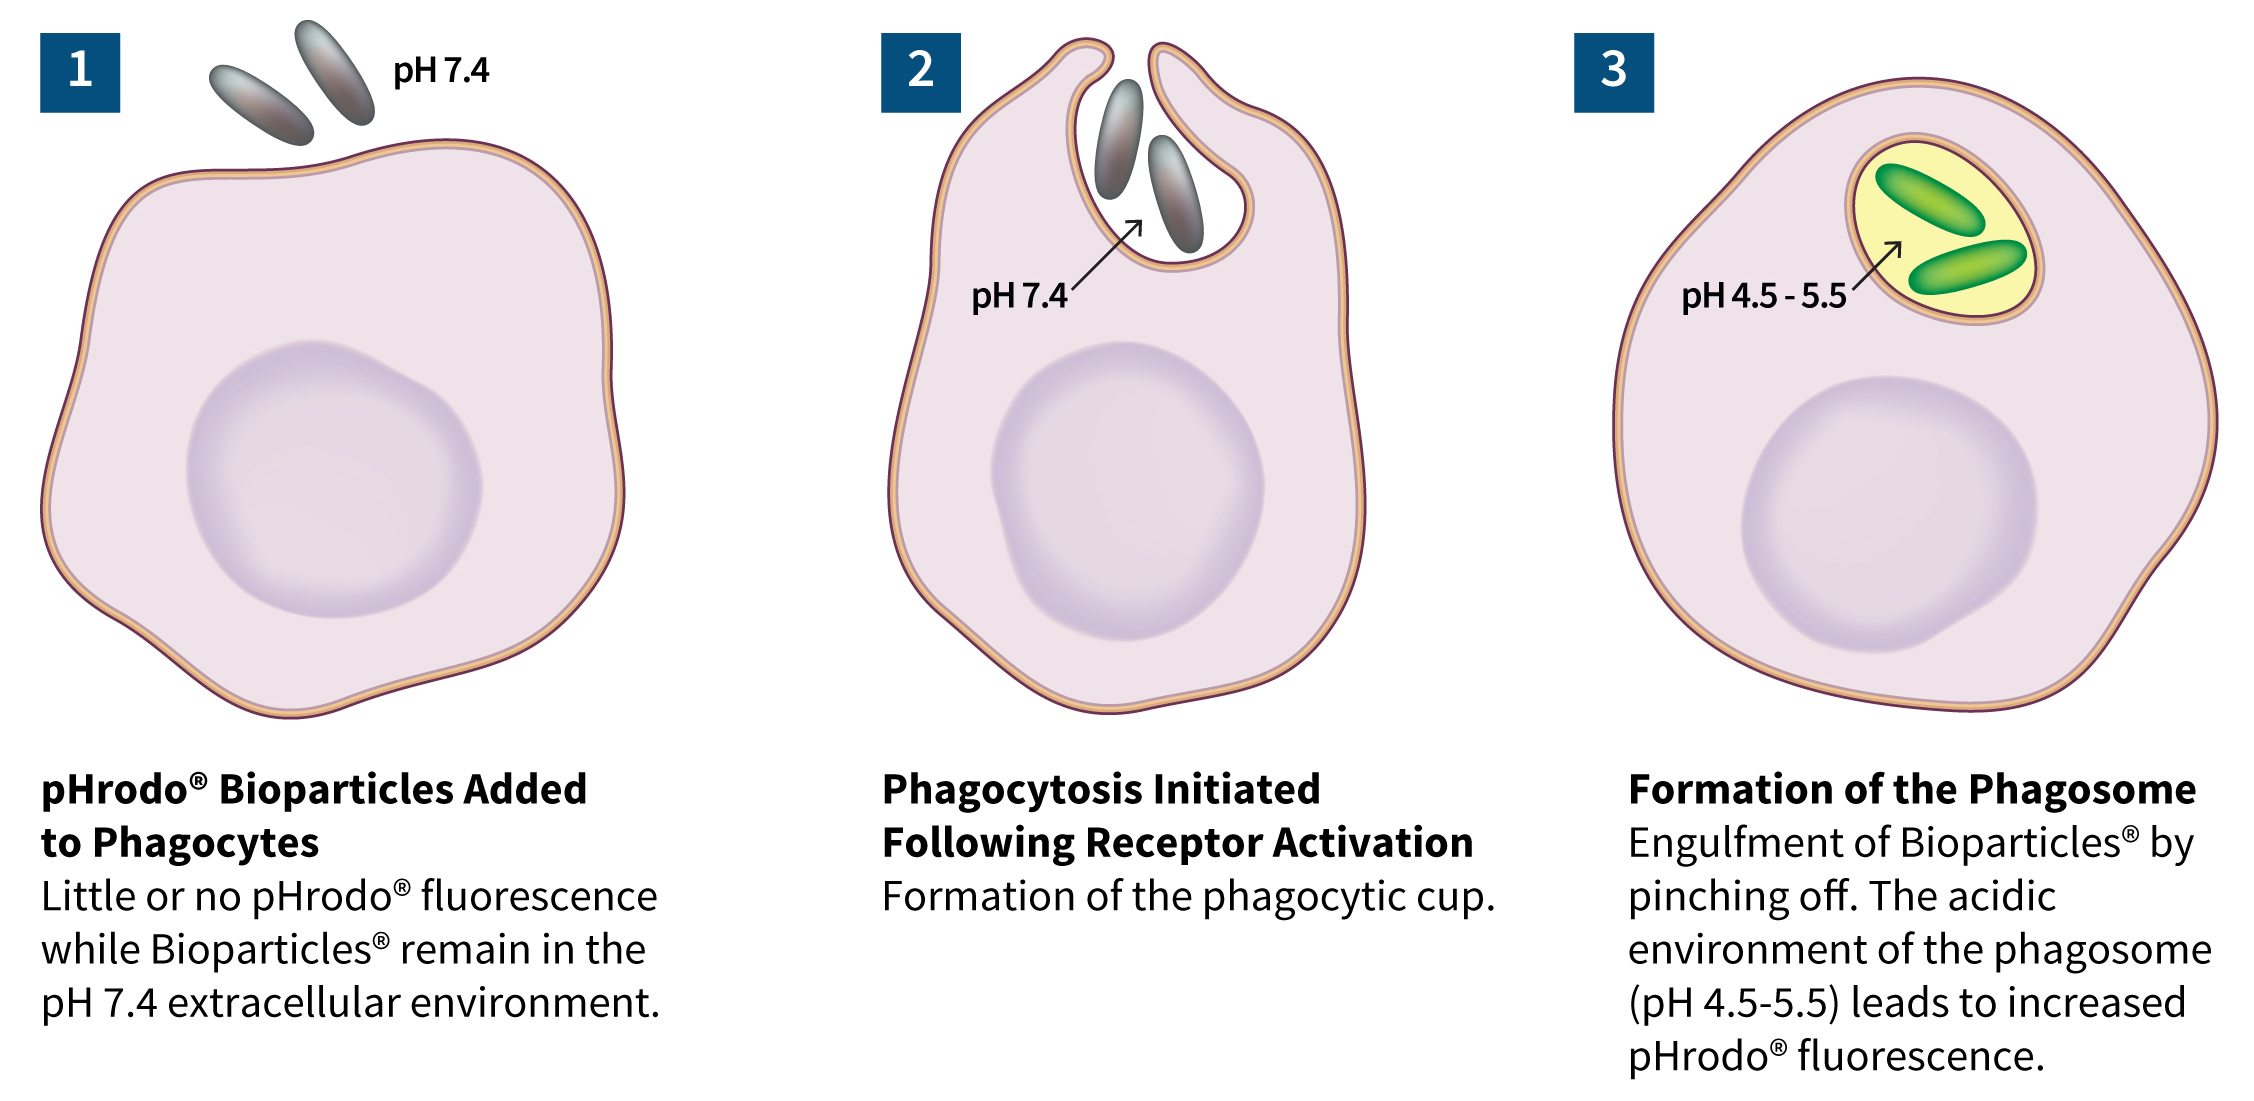 Phagocytosis of bacterial or yeast bioparticles by macrophages